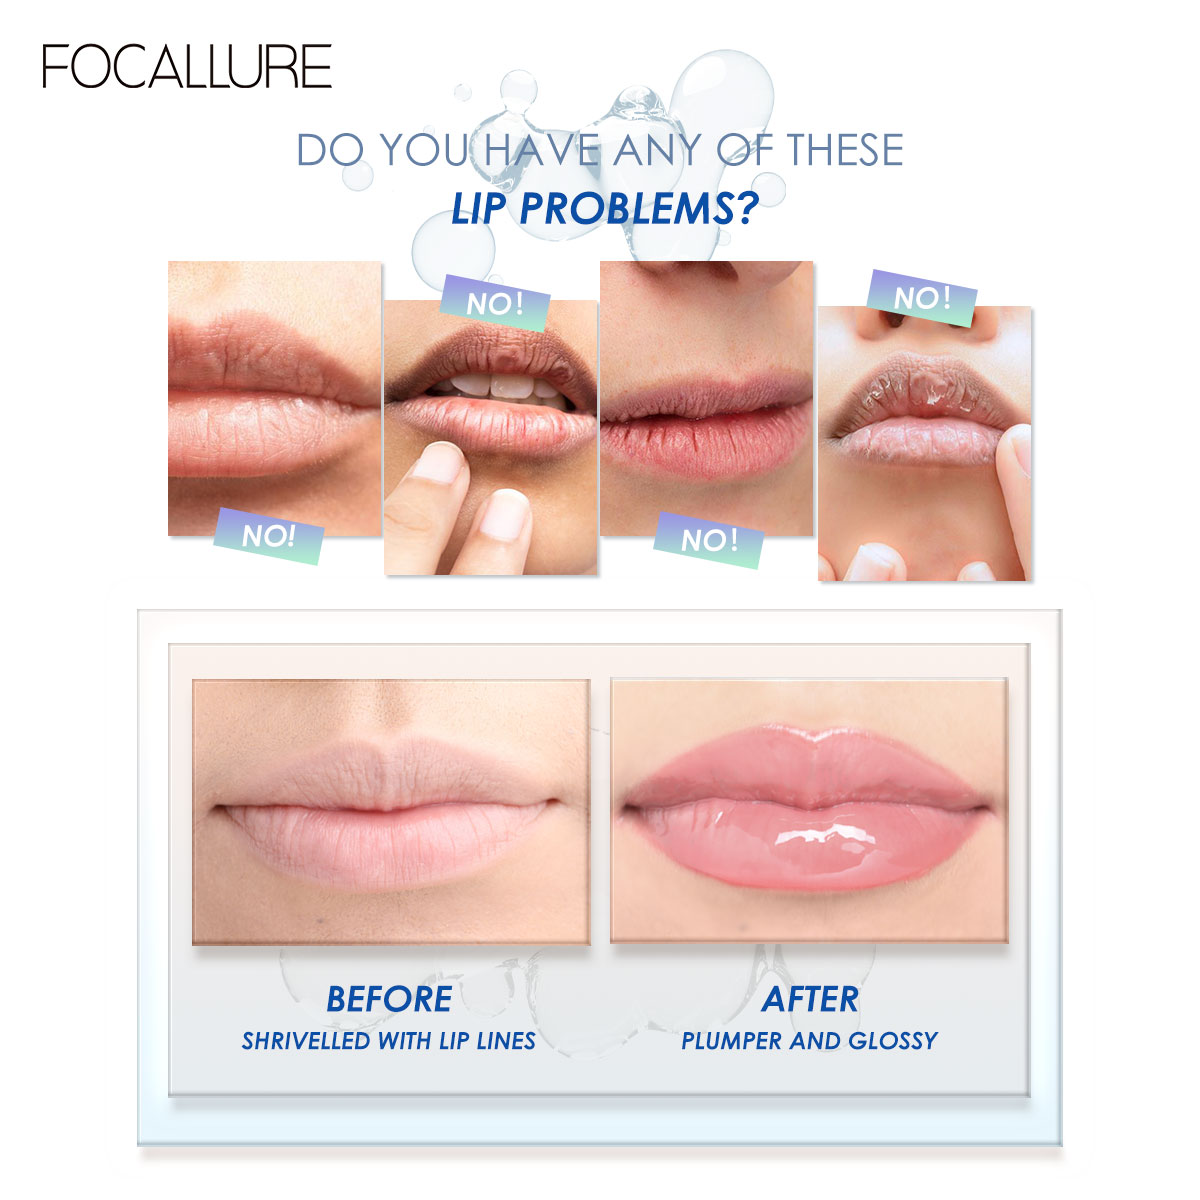 Focallure Clear Plumper Moisturizing Lip Gloss Non-sticky Enrich With Lip Care Makeup Lipglossy